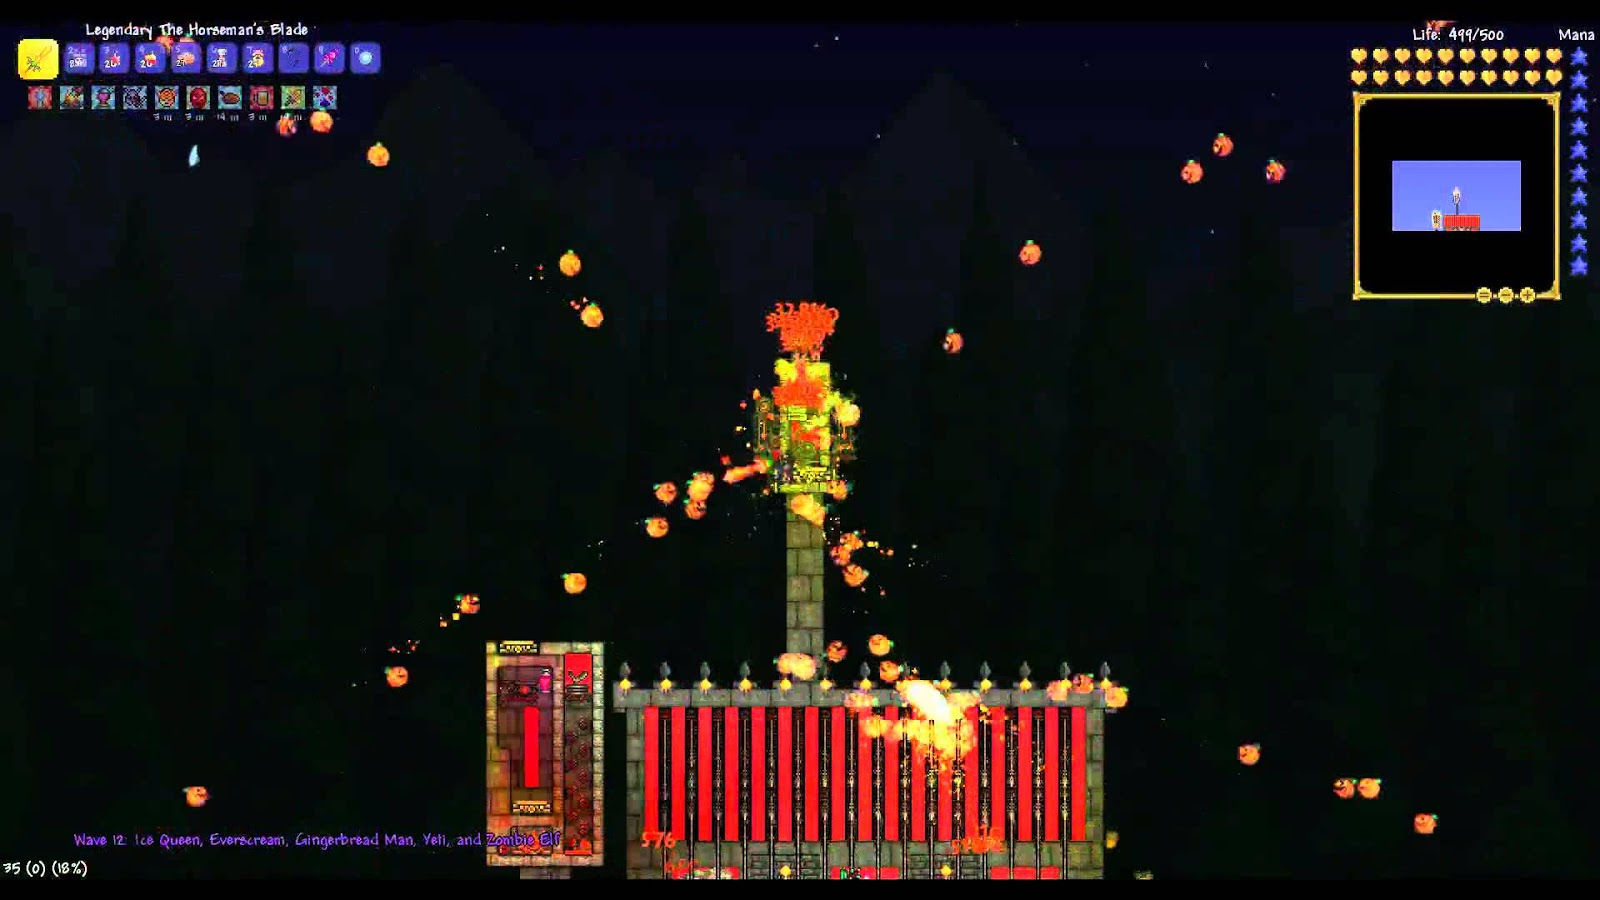 Ike06 Gaming Terraria Invincibility Hack And More Wiring Guide Now Well Talk About The Boss Event Farm